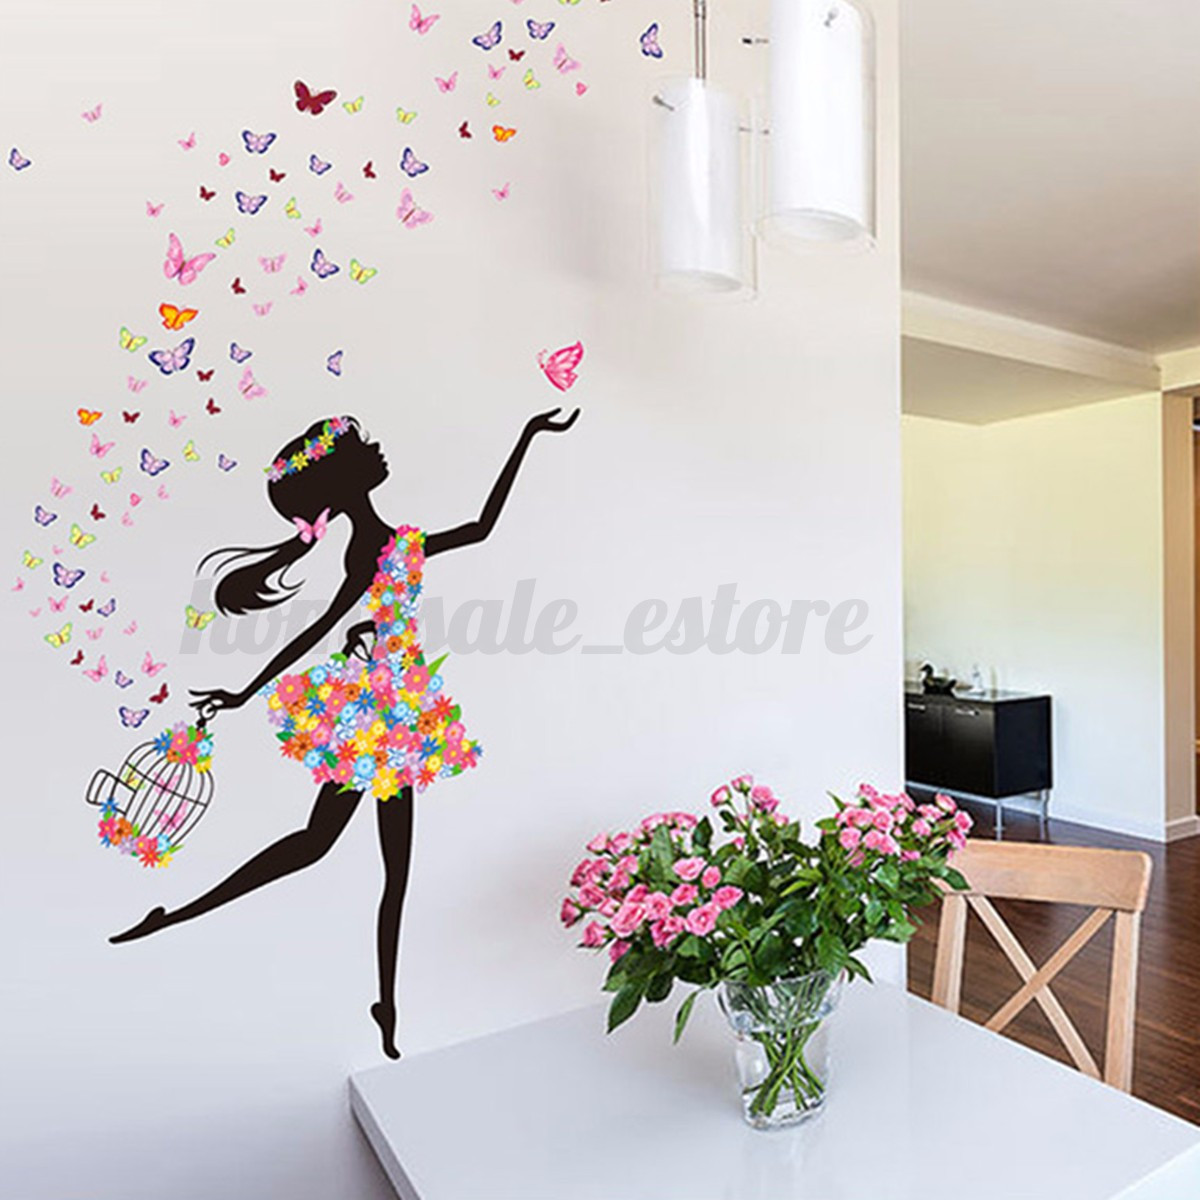 Flower girl removable wall art sticker vinyl decal kids for Butterfly mural wallpaper